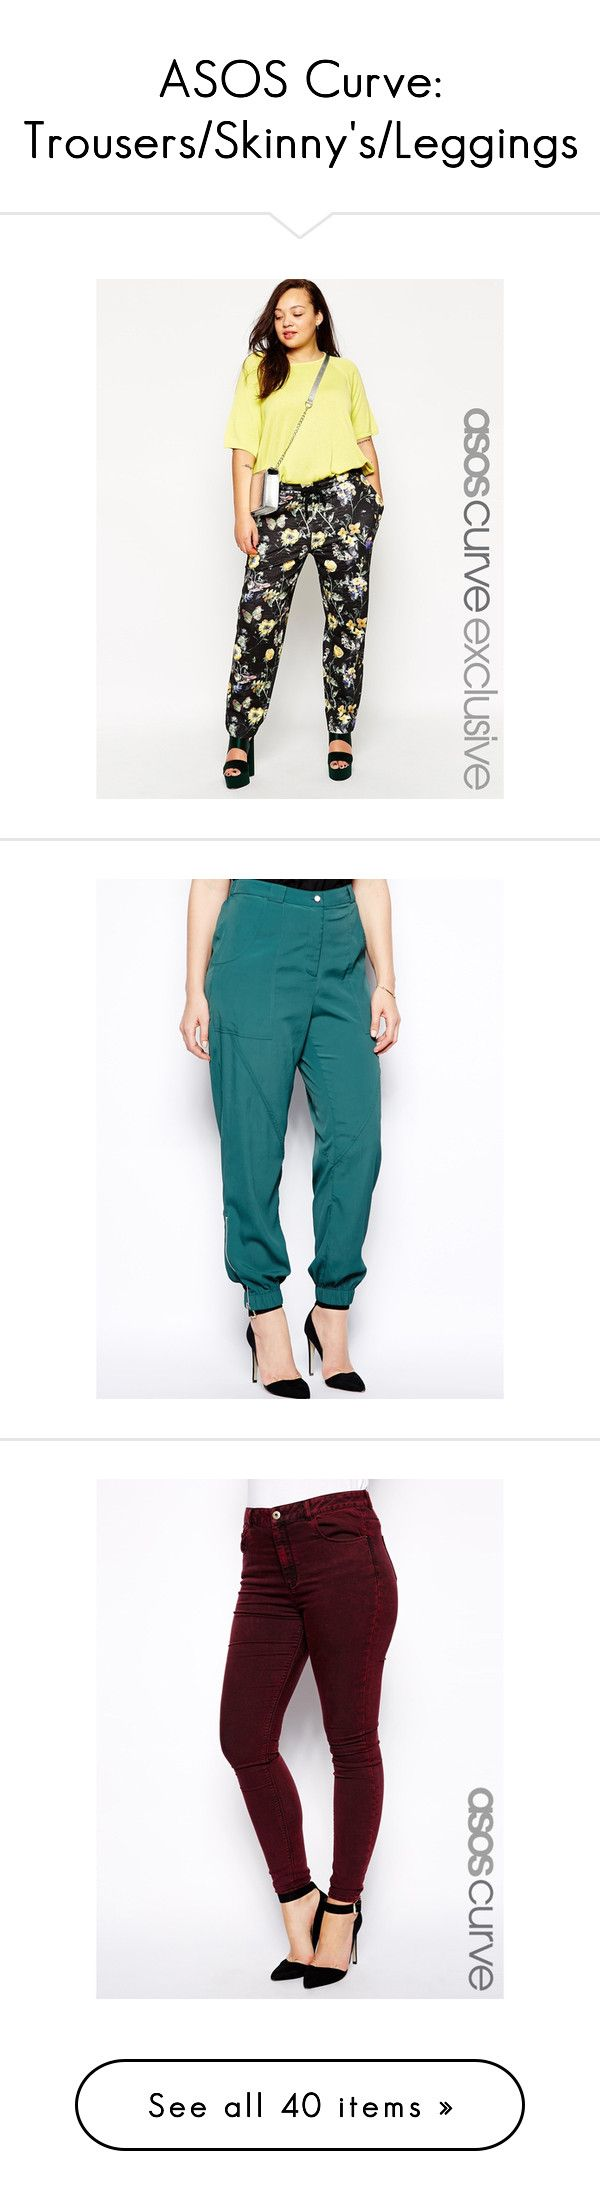 """""""ASOS Curve: Trousers/Skinny's/Leggings"""" by zbloodgoode ❤ liked on Polyvore featuring plussize, zbloodgoode, multi, plus size, asos curve, pants, capris, blue pants, highwaisted pants and plus size trousers"""